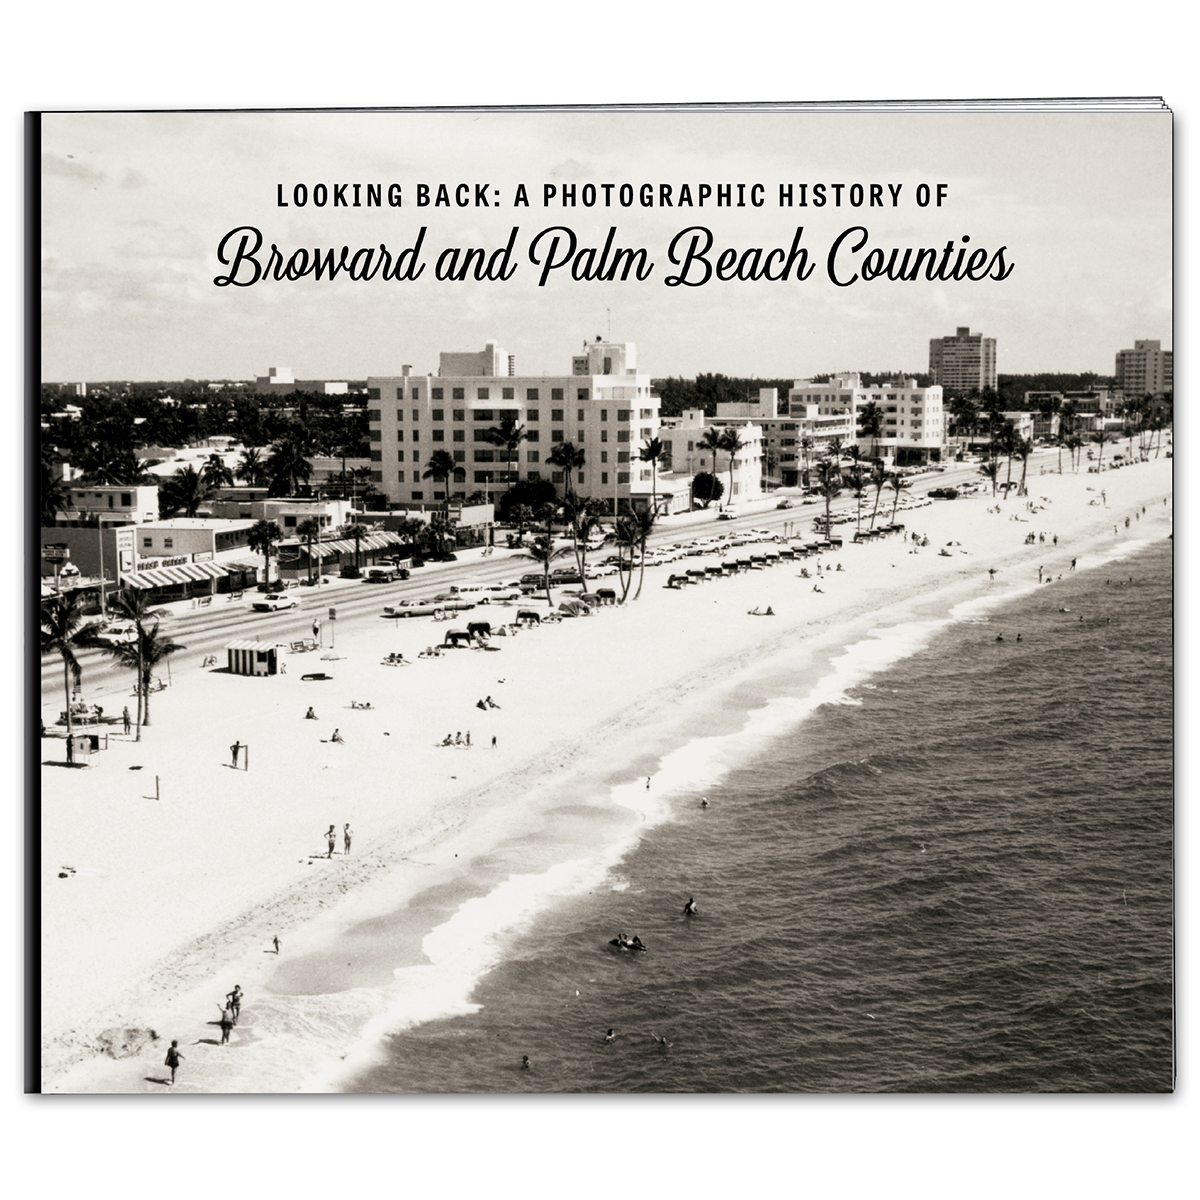 Looking Back: A Photographic History of Broward and Palm Beach Counties